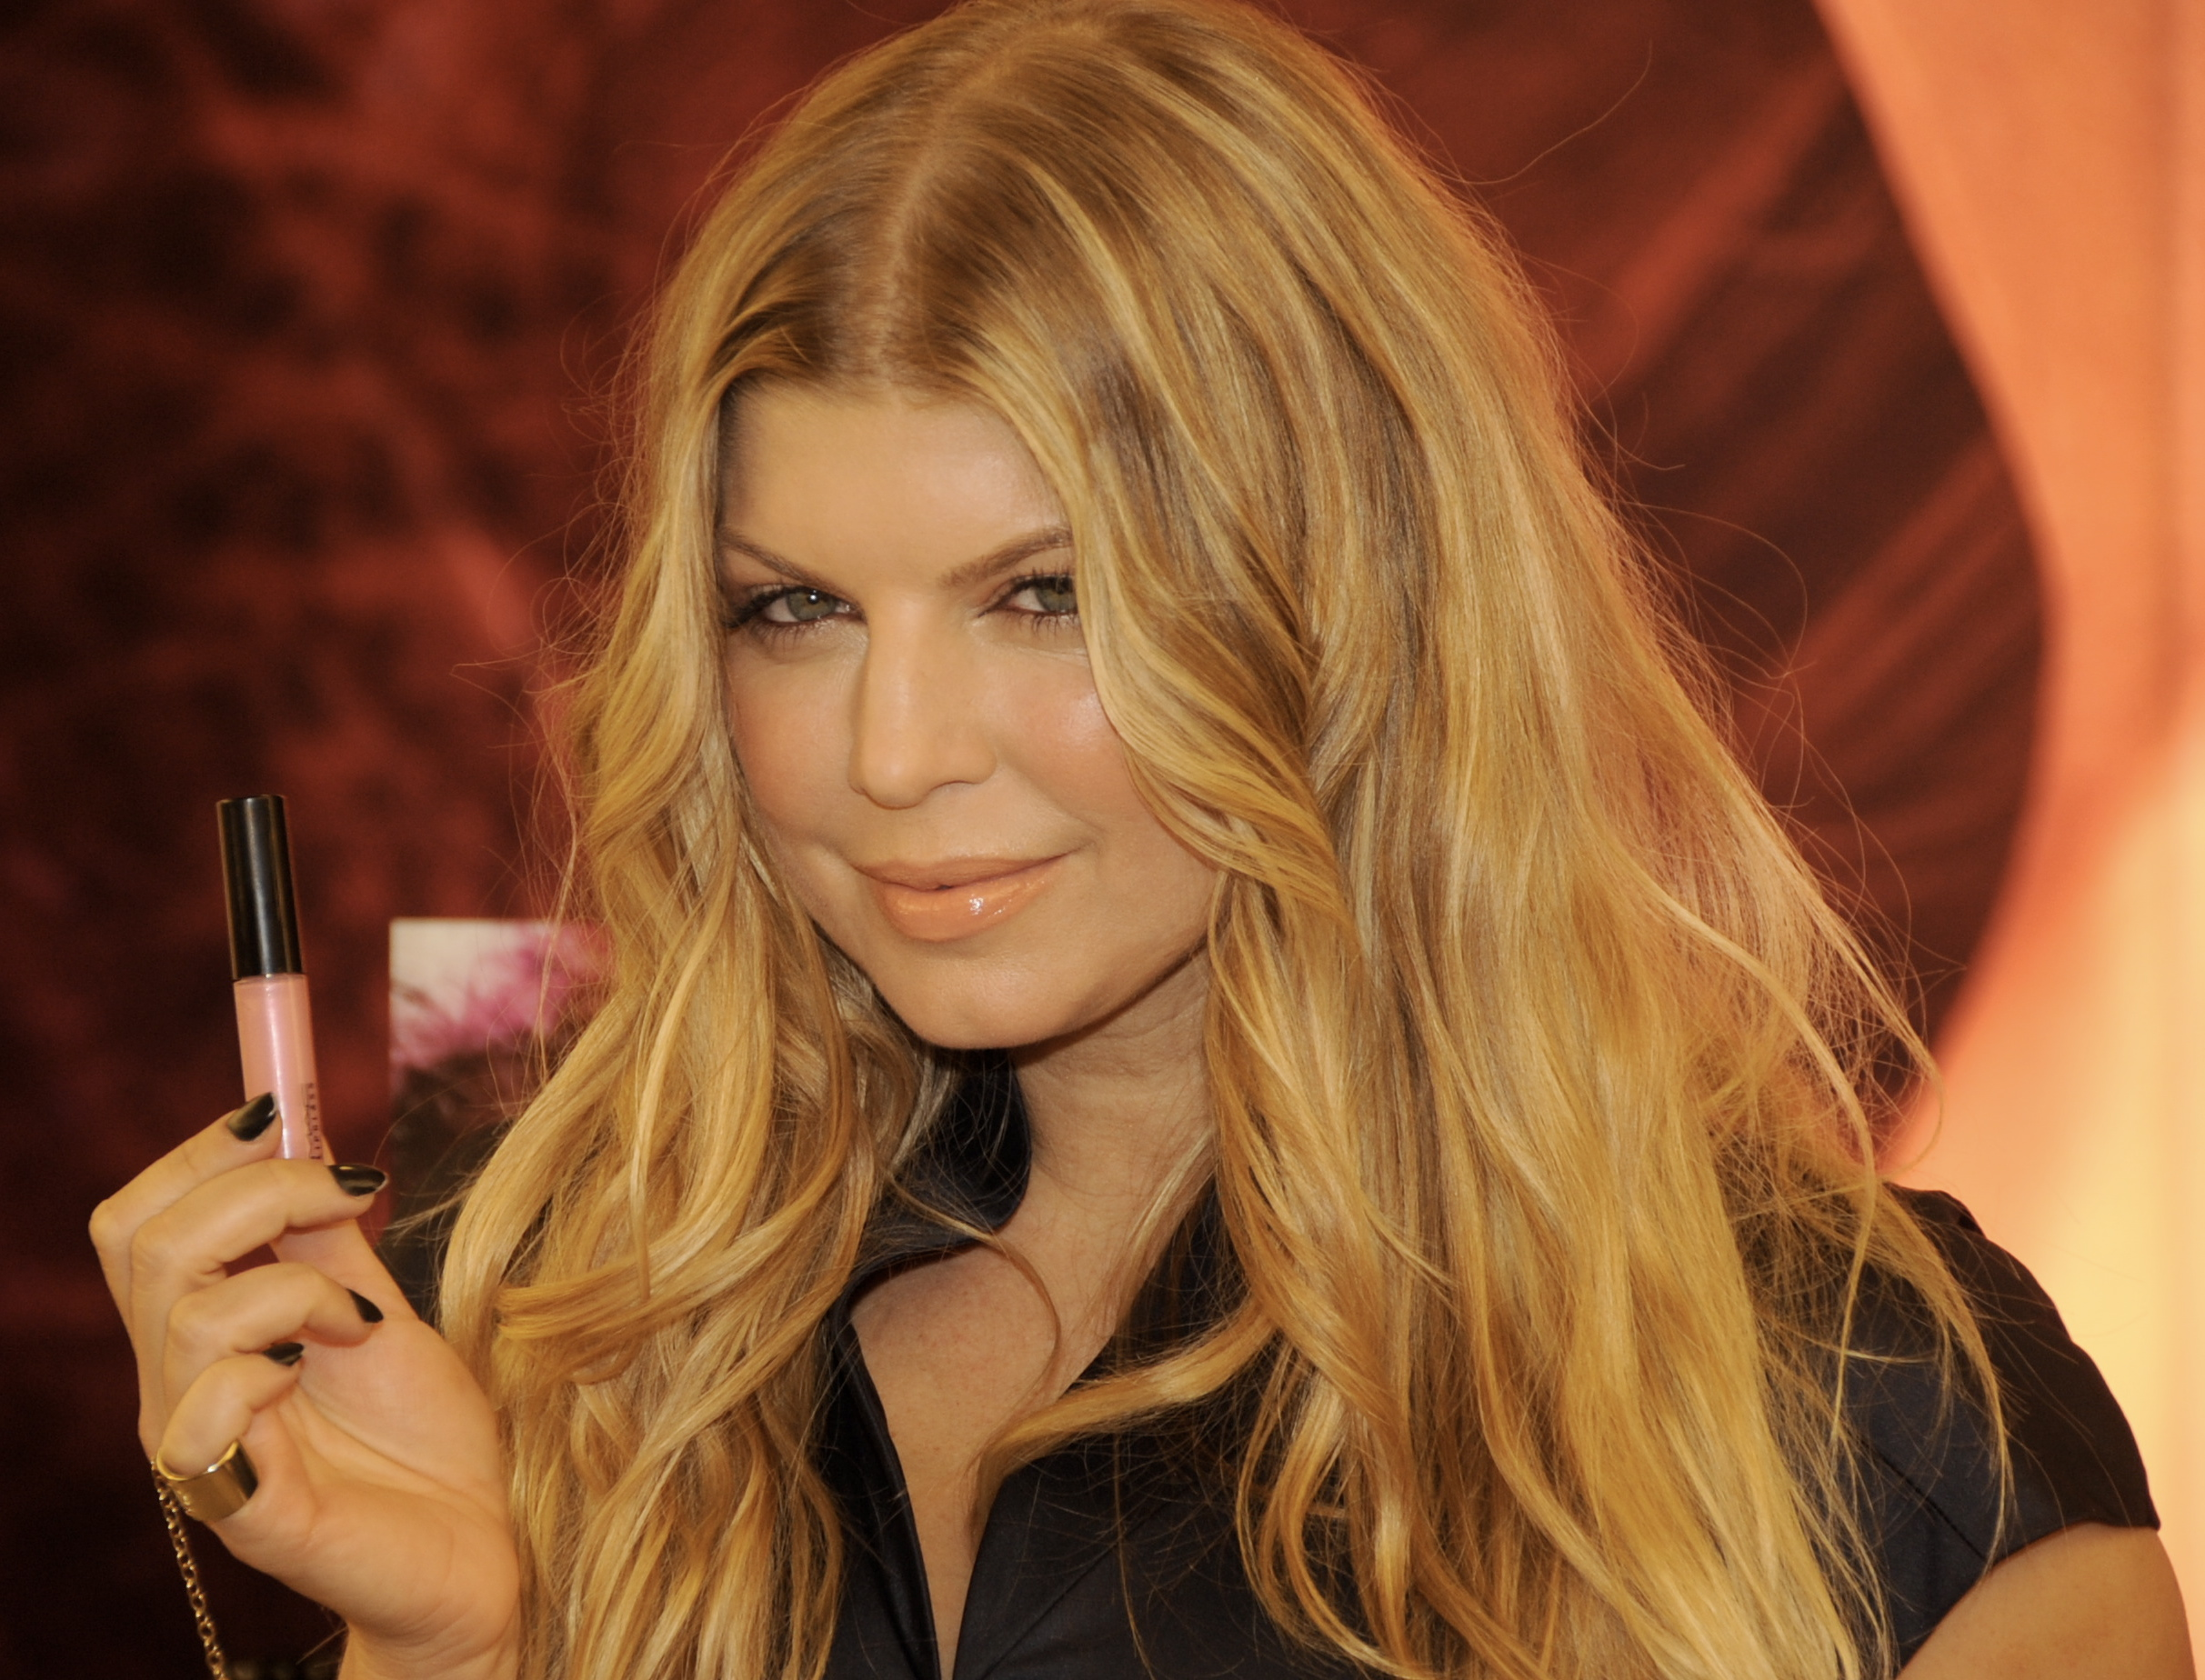 Fergie reveals her new VIVA GLAM VI ÊSpecial Edition Lipstick and